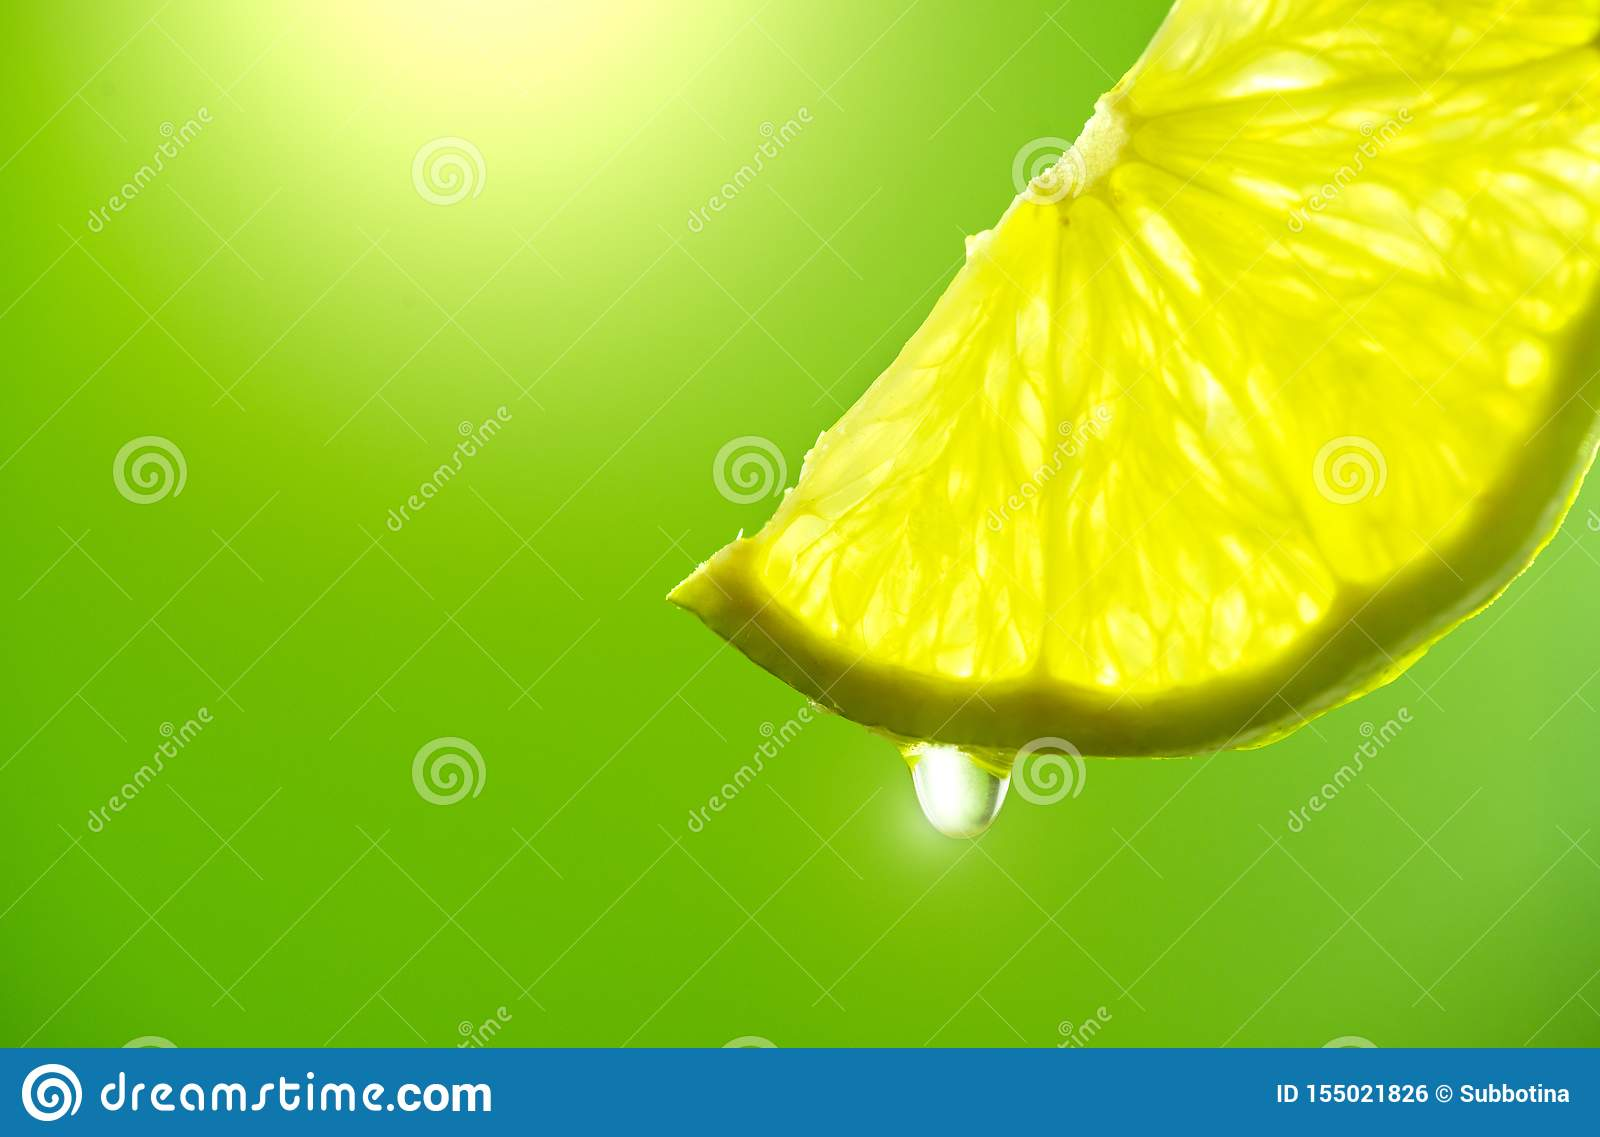 Lemon slice with drop of juice closeup. Fresh and juicy Lime over green background